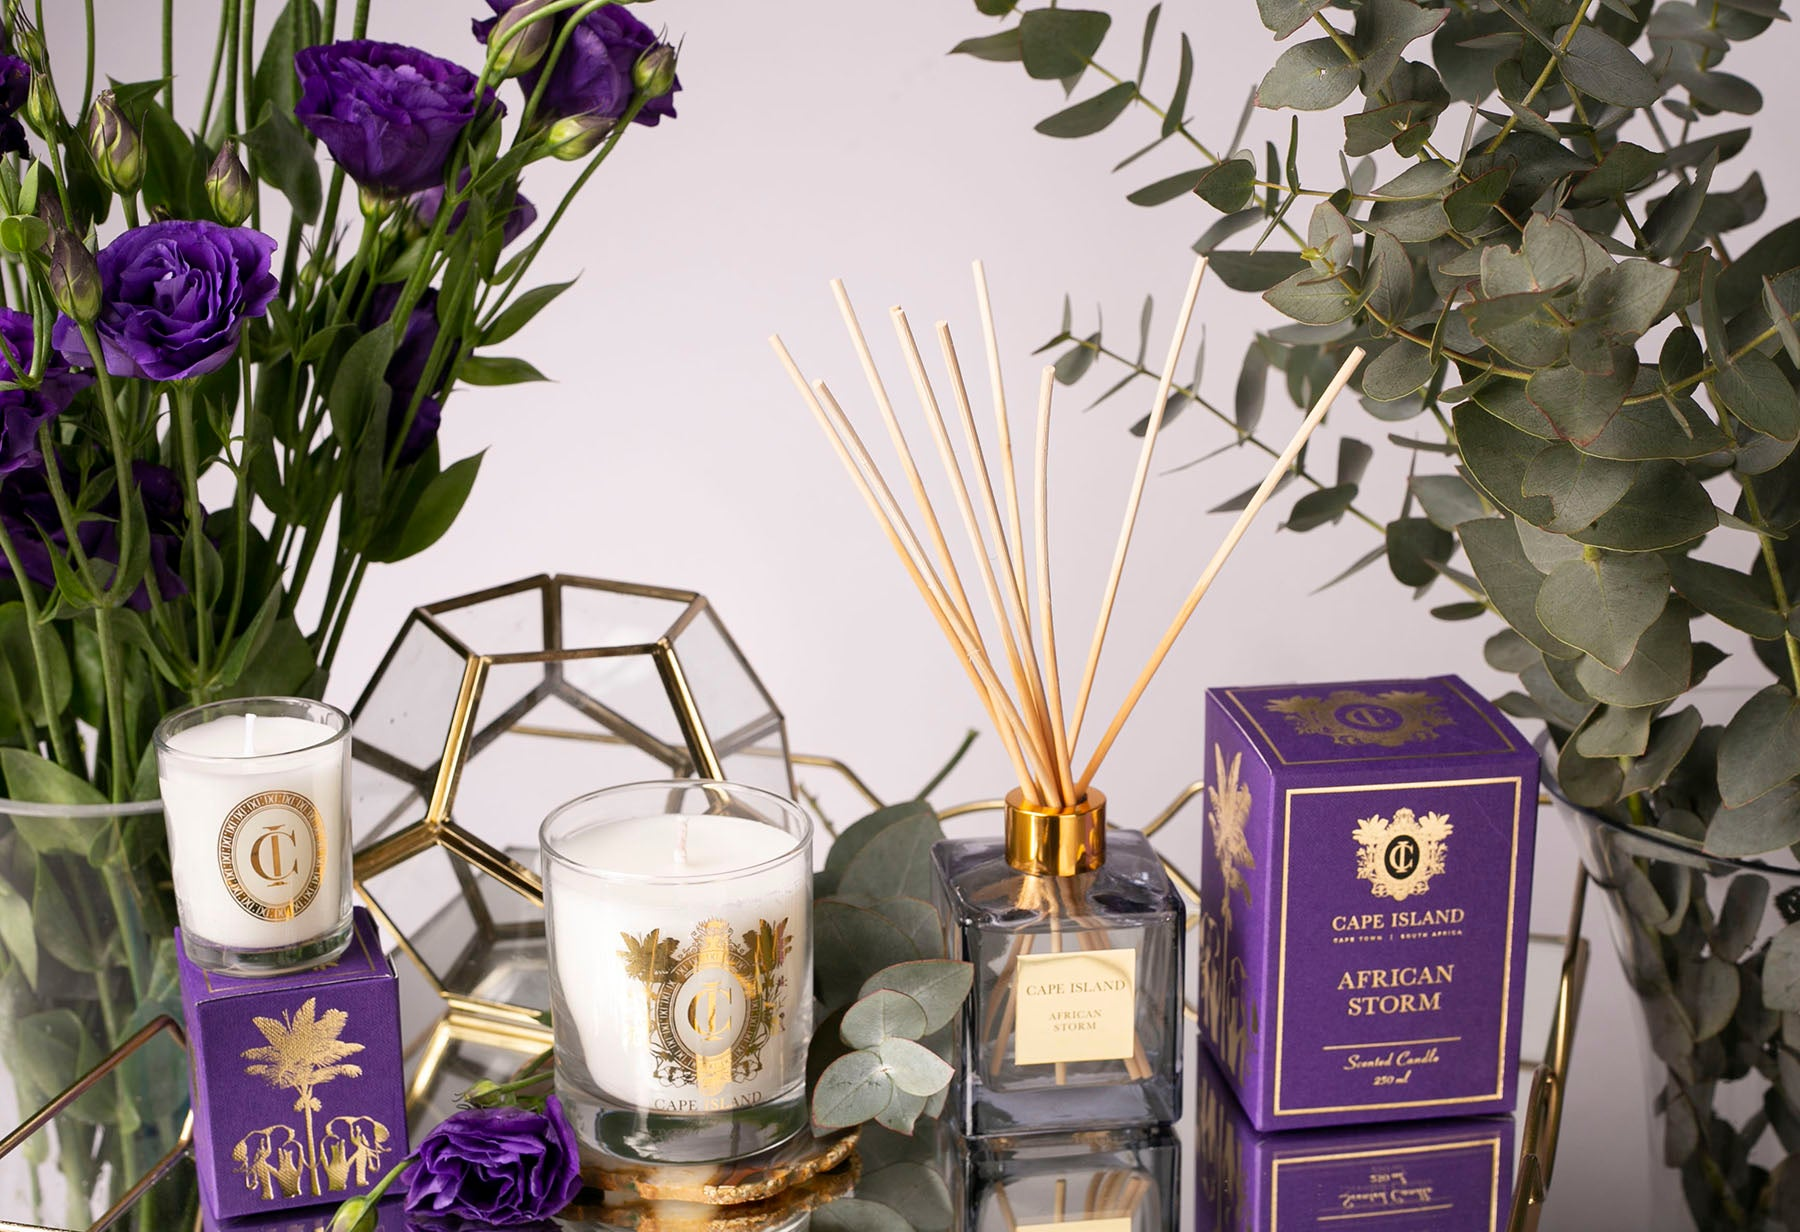 The Cape Island African Storm fragrance diffuser and candle. Cape Island luxury candles, soap products and home fragrances are available at Sarza home goods and furniture store in Rye New York.